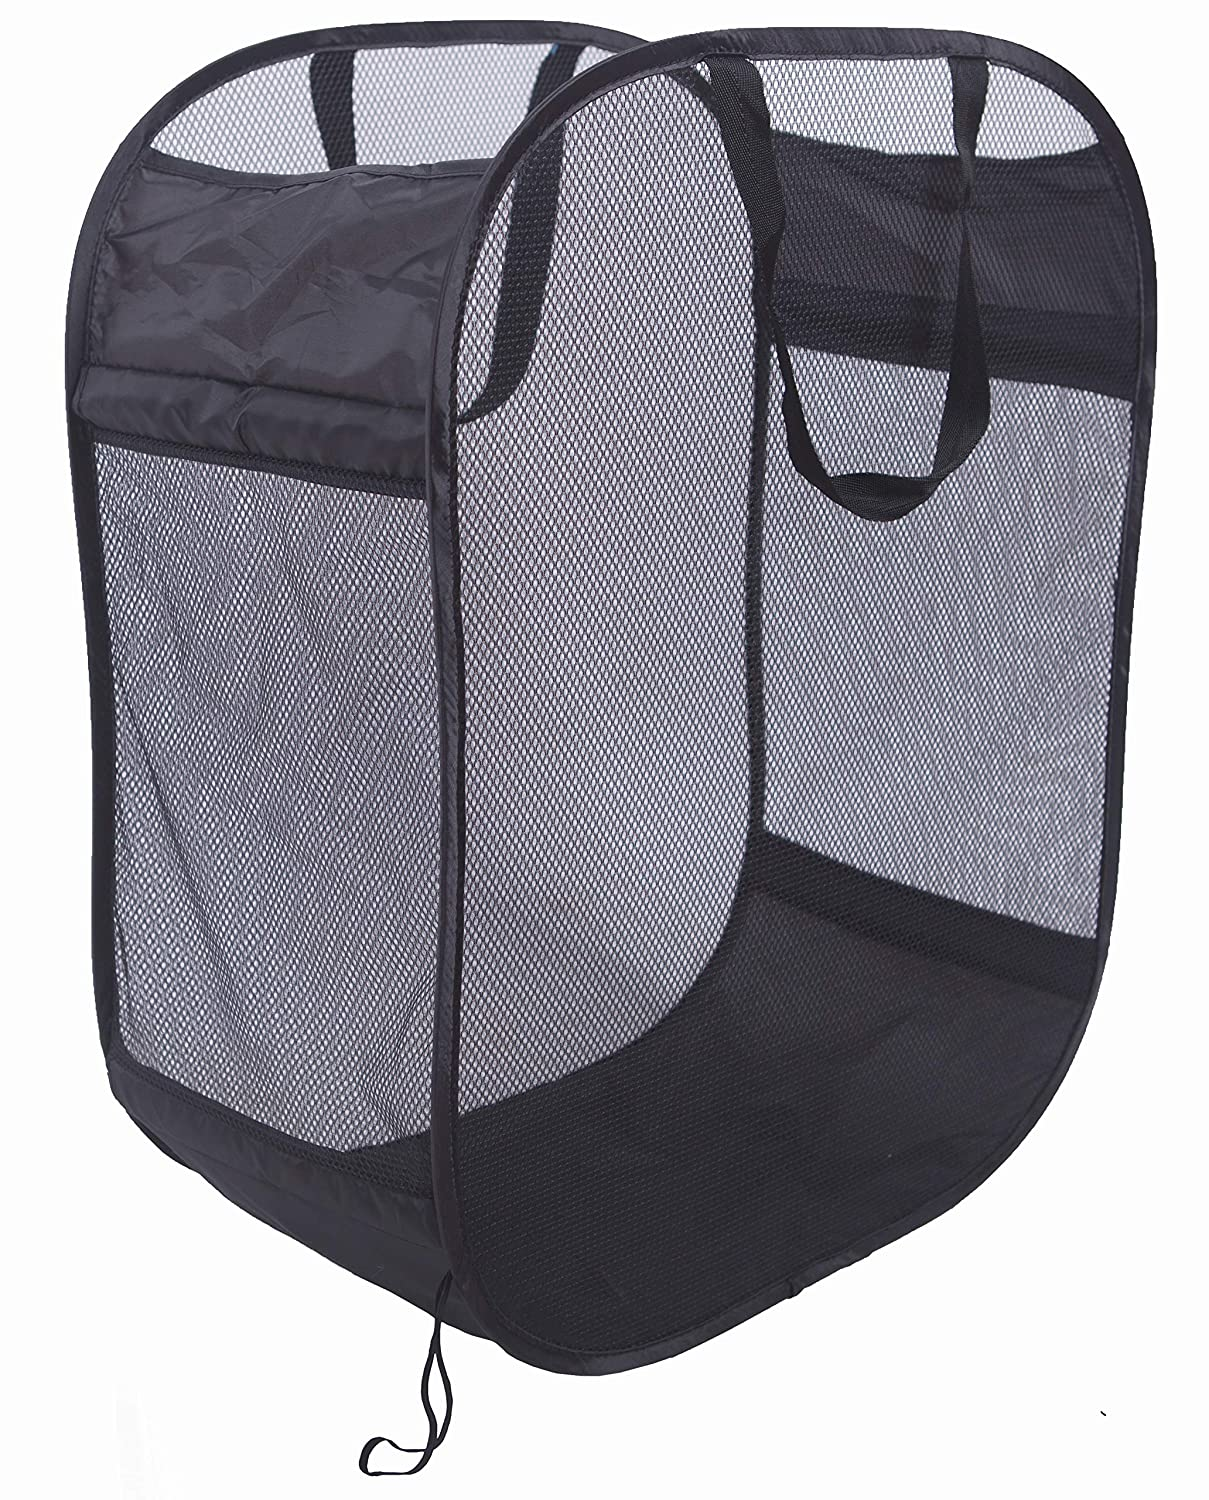 Amelitory Mesh Pop-up Laundry Hamper Easy Foldable Laundry Baskets with Two Durable Handles for Home,Dorm,Travelling Storage Black